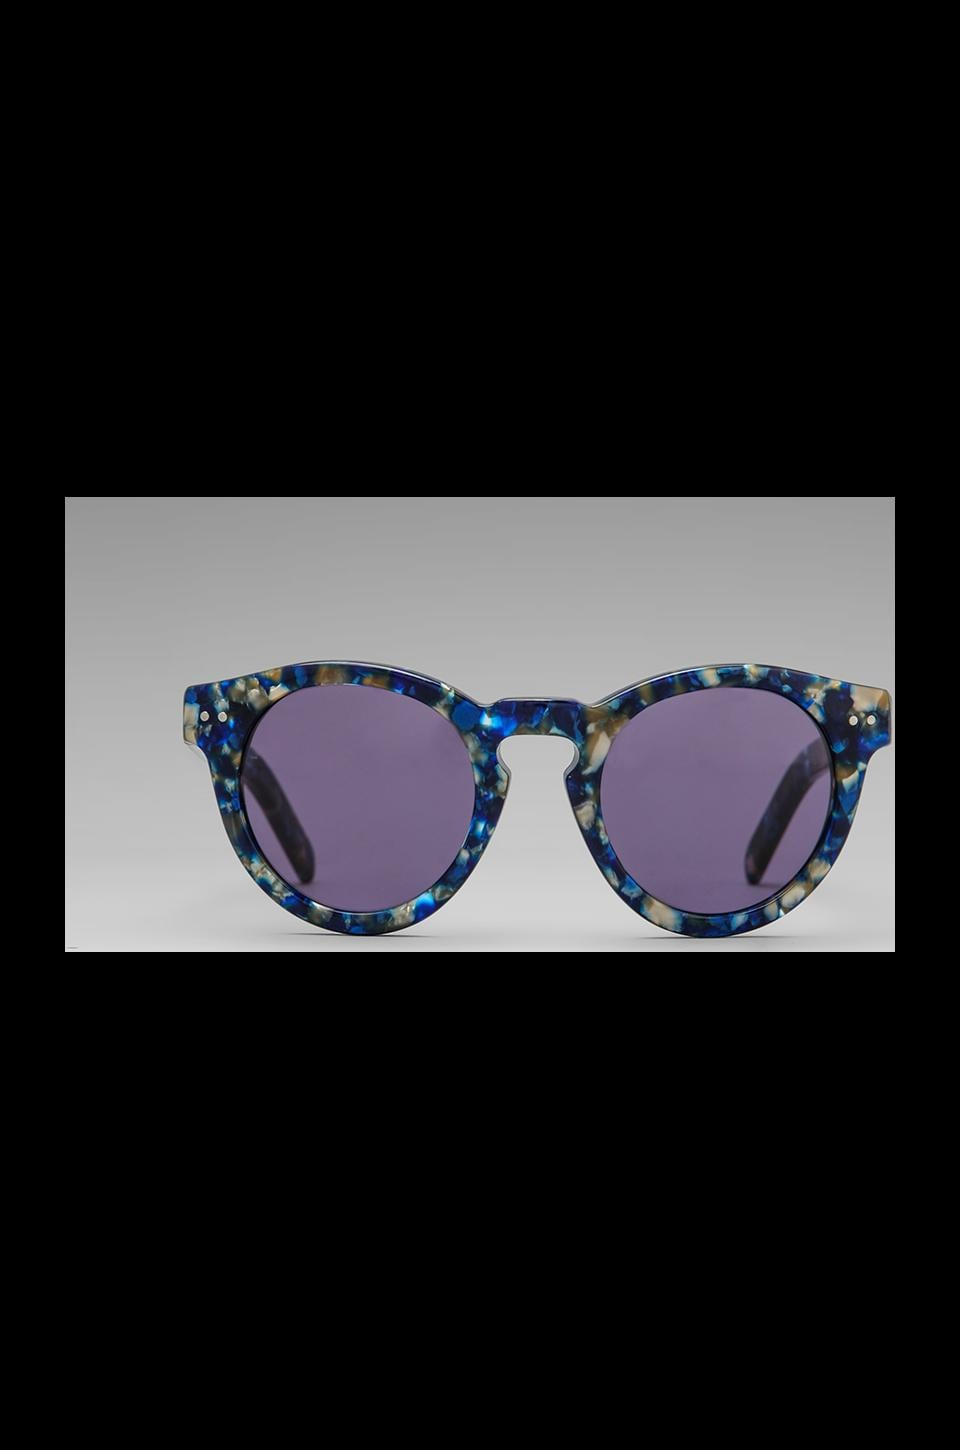 House of Harlow Carmen Sunglasses in Sapphire